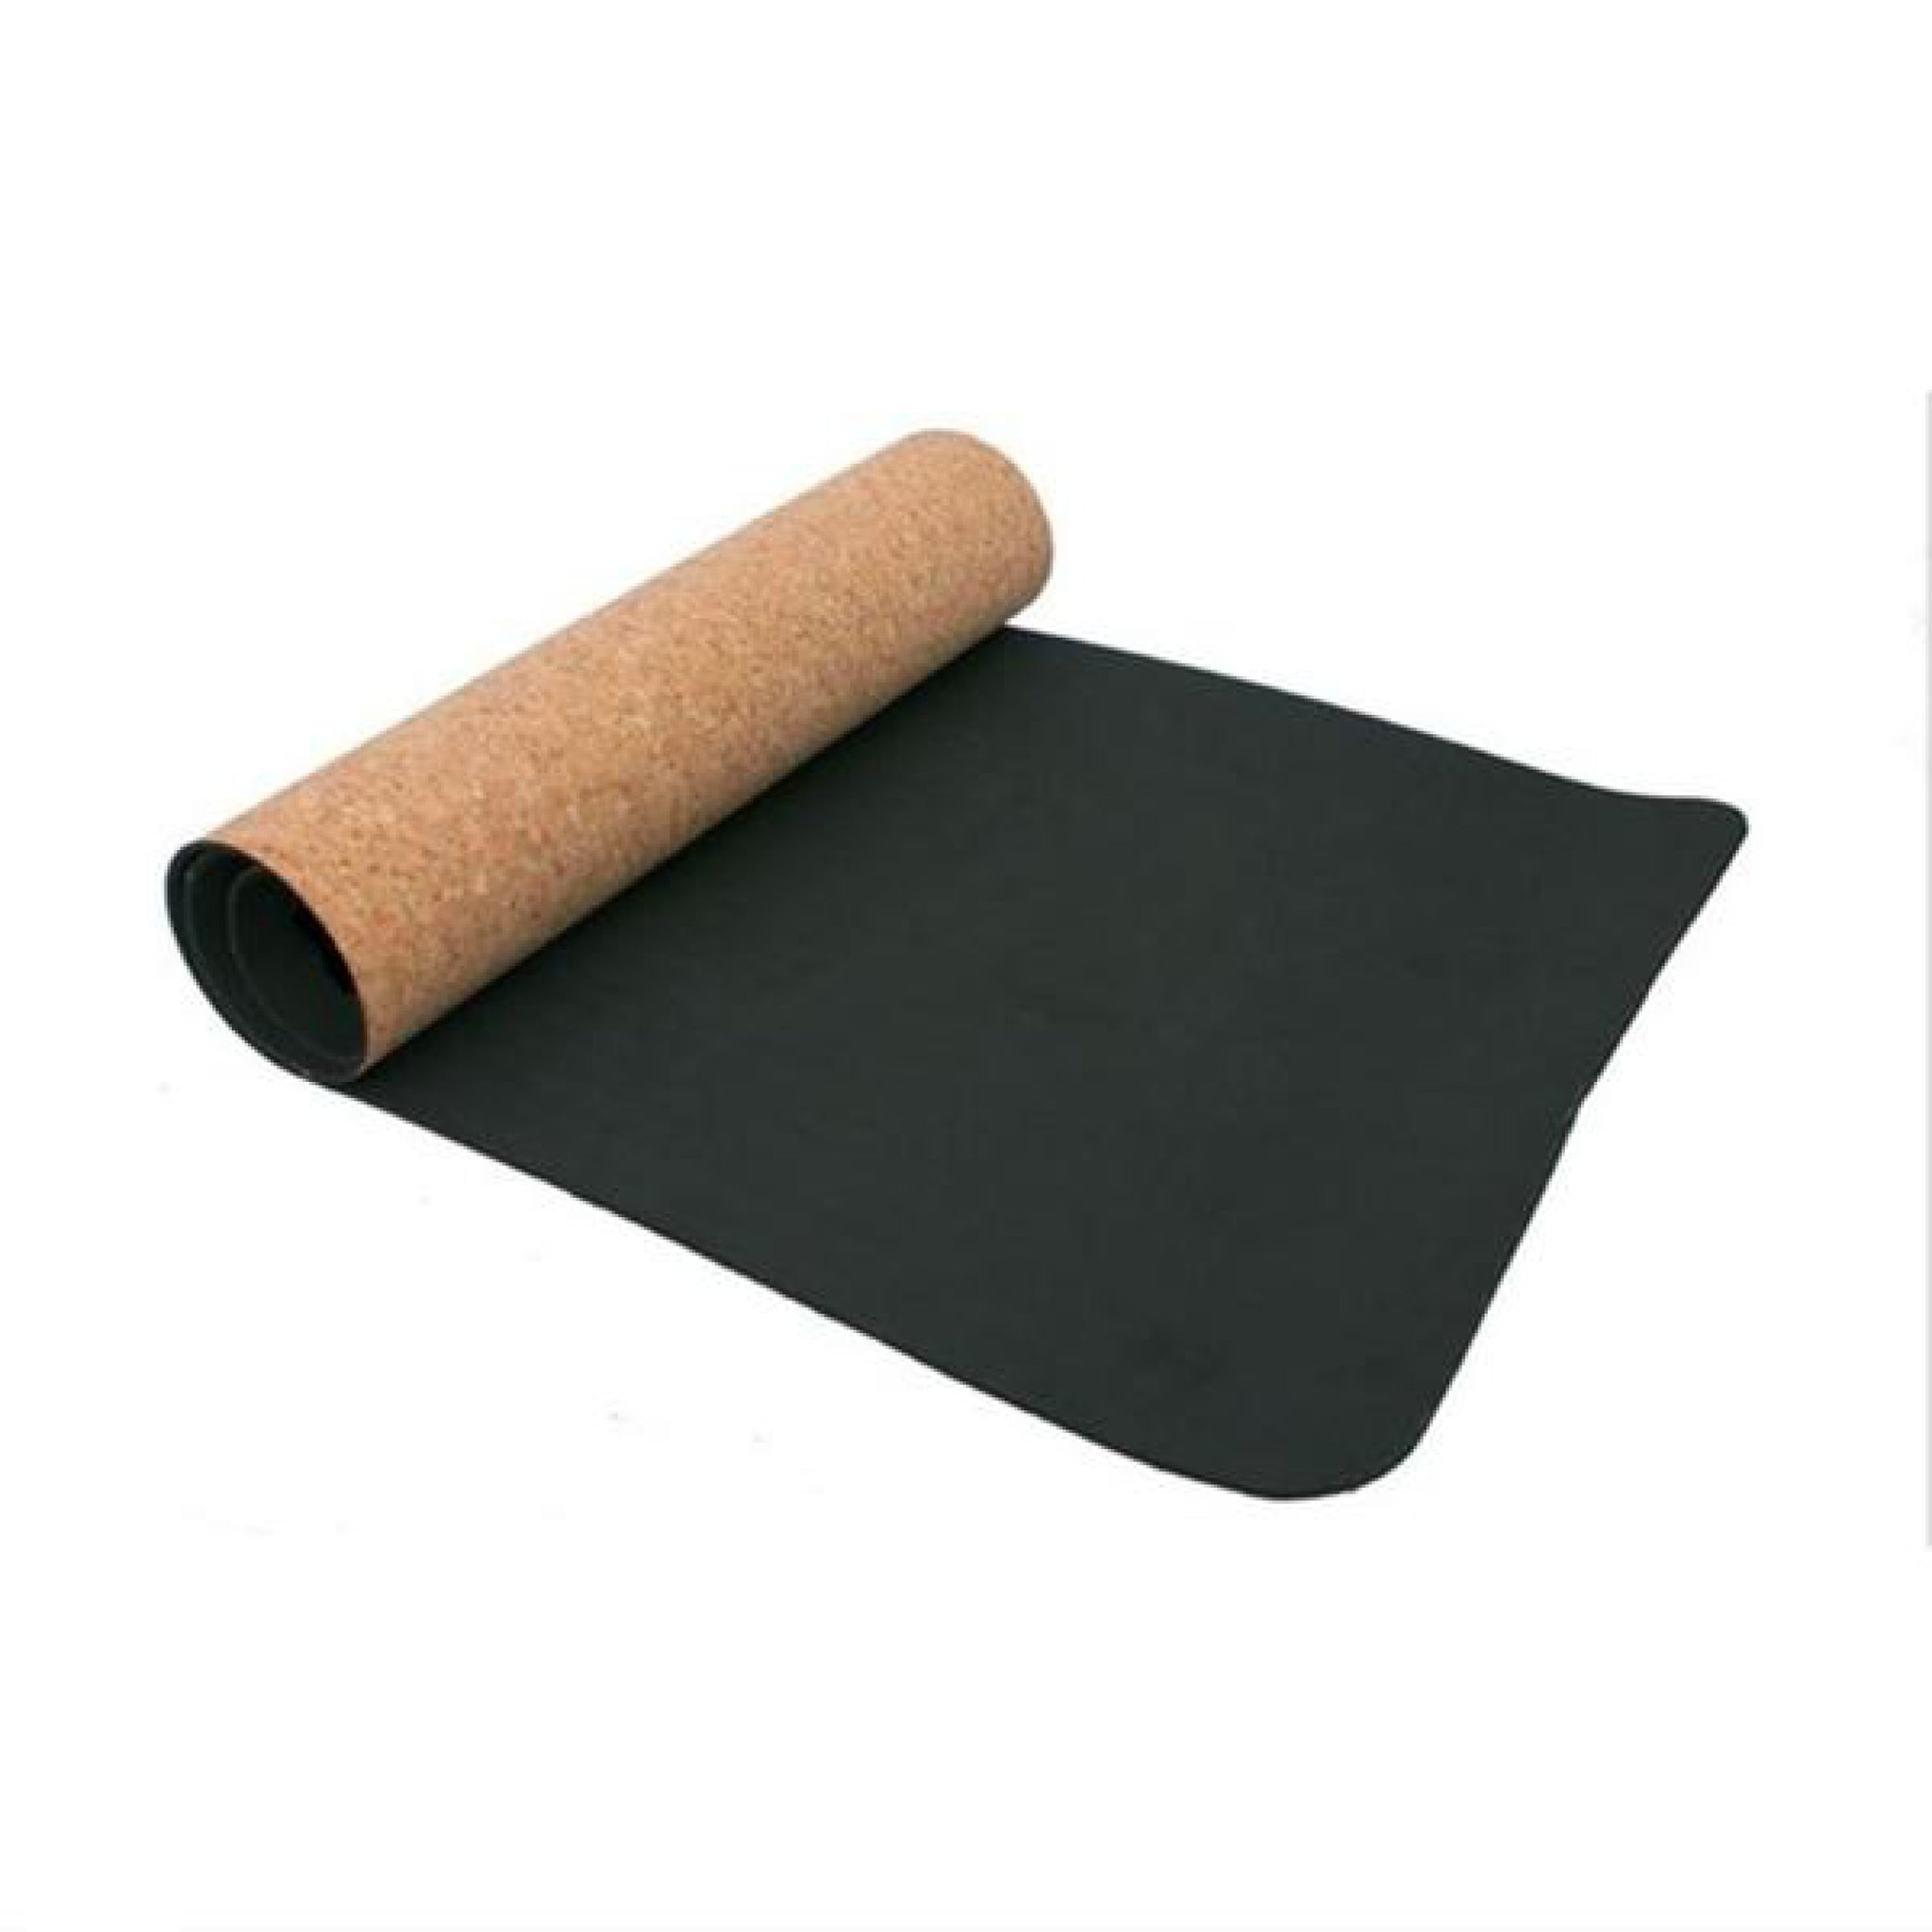 flooring rubber size photo floor products tiles click mats to workout interlocking full view